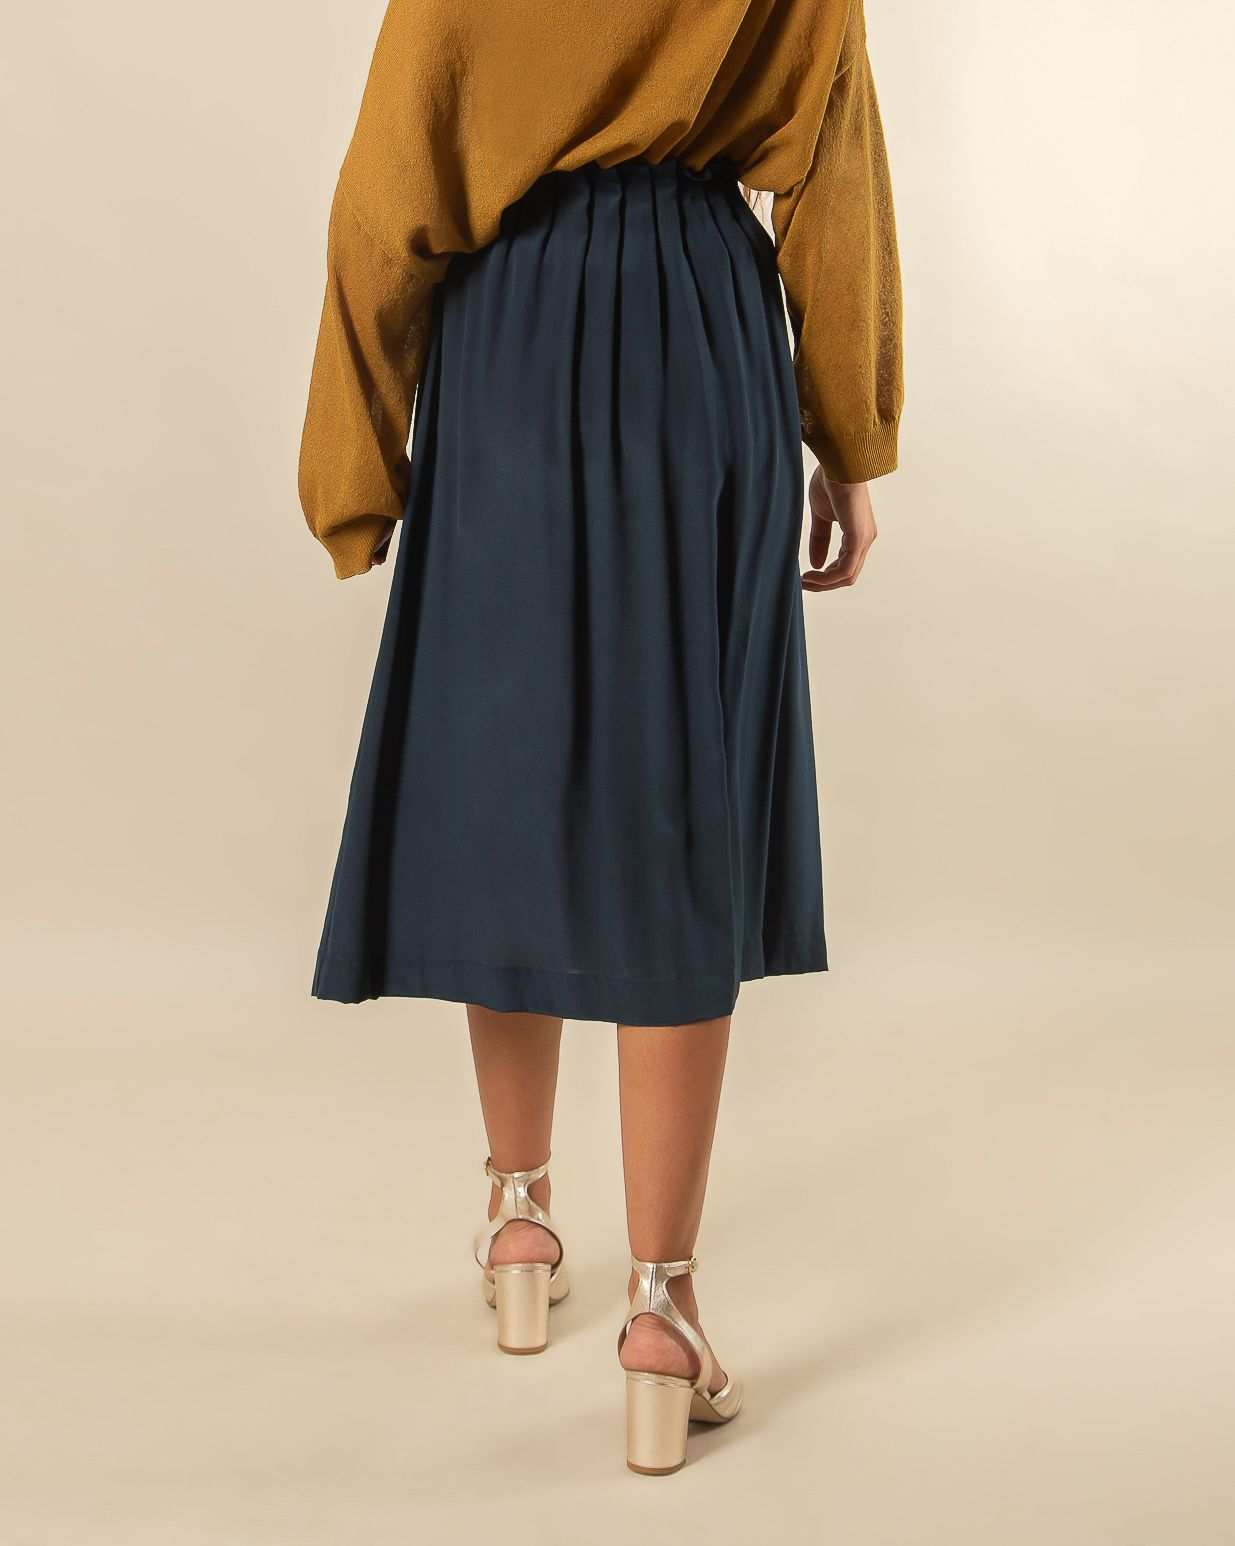 LOUISETTE SILK LONG SKIRT